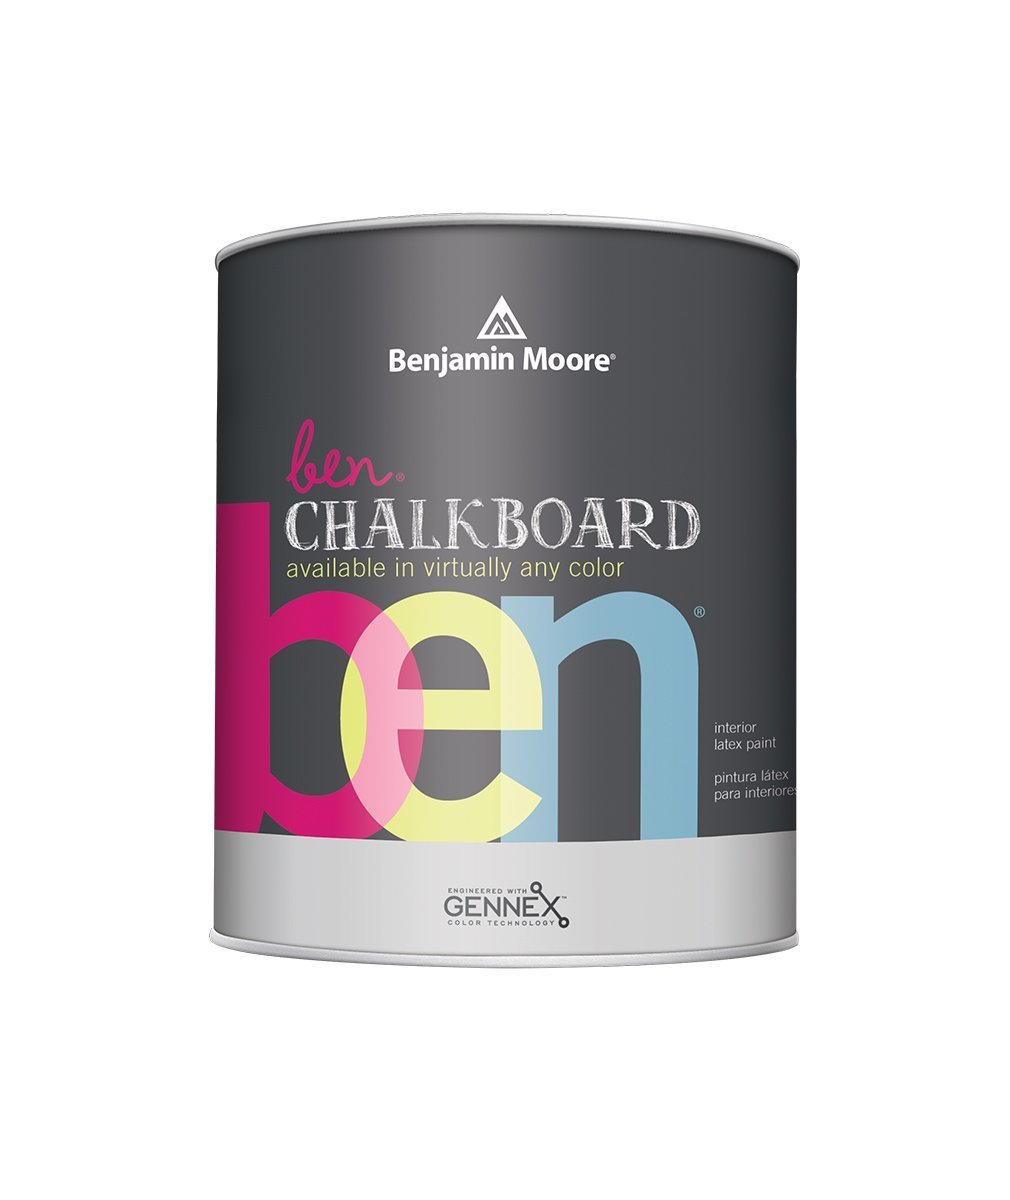 Benjamin Moore chalkboard paint available in Quart size available at Johnson Paint & Maine Paint in MA, NH & ME.